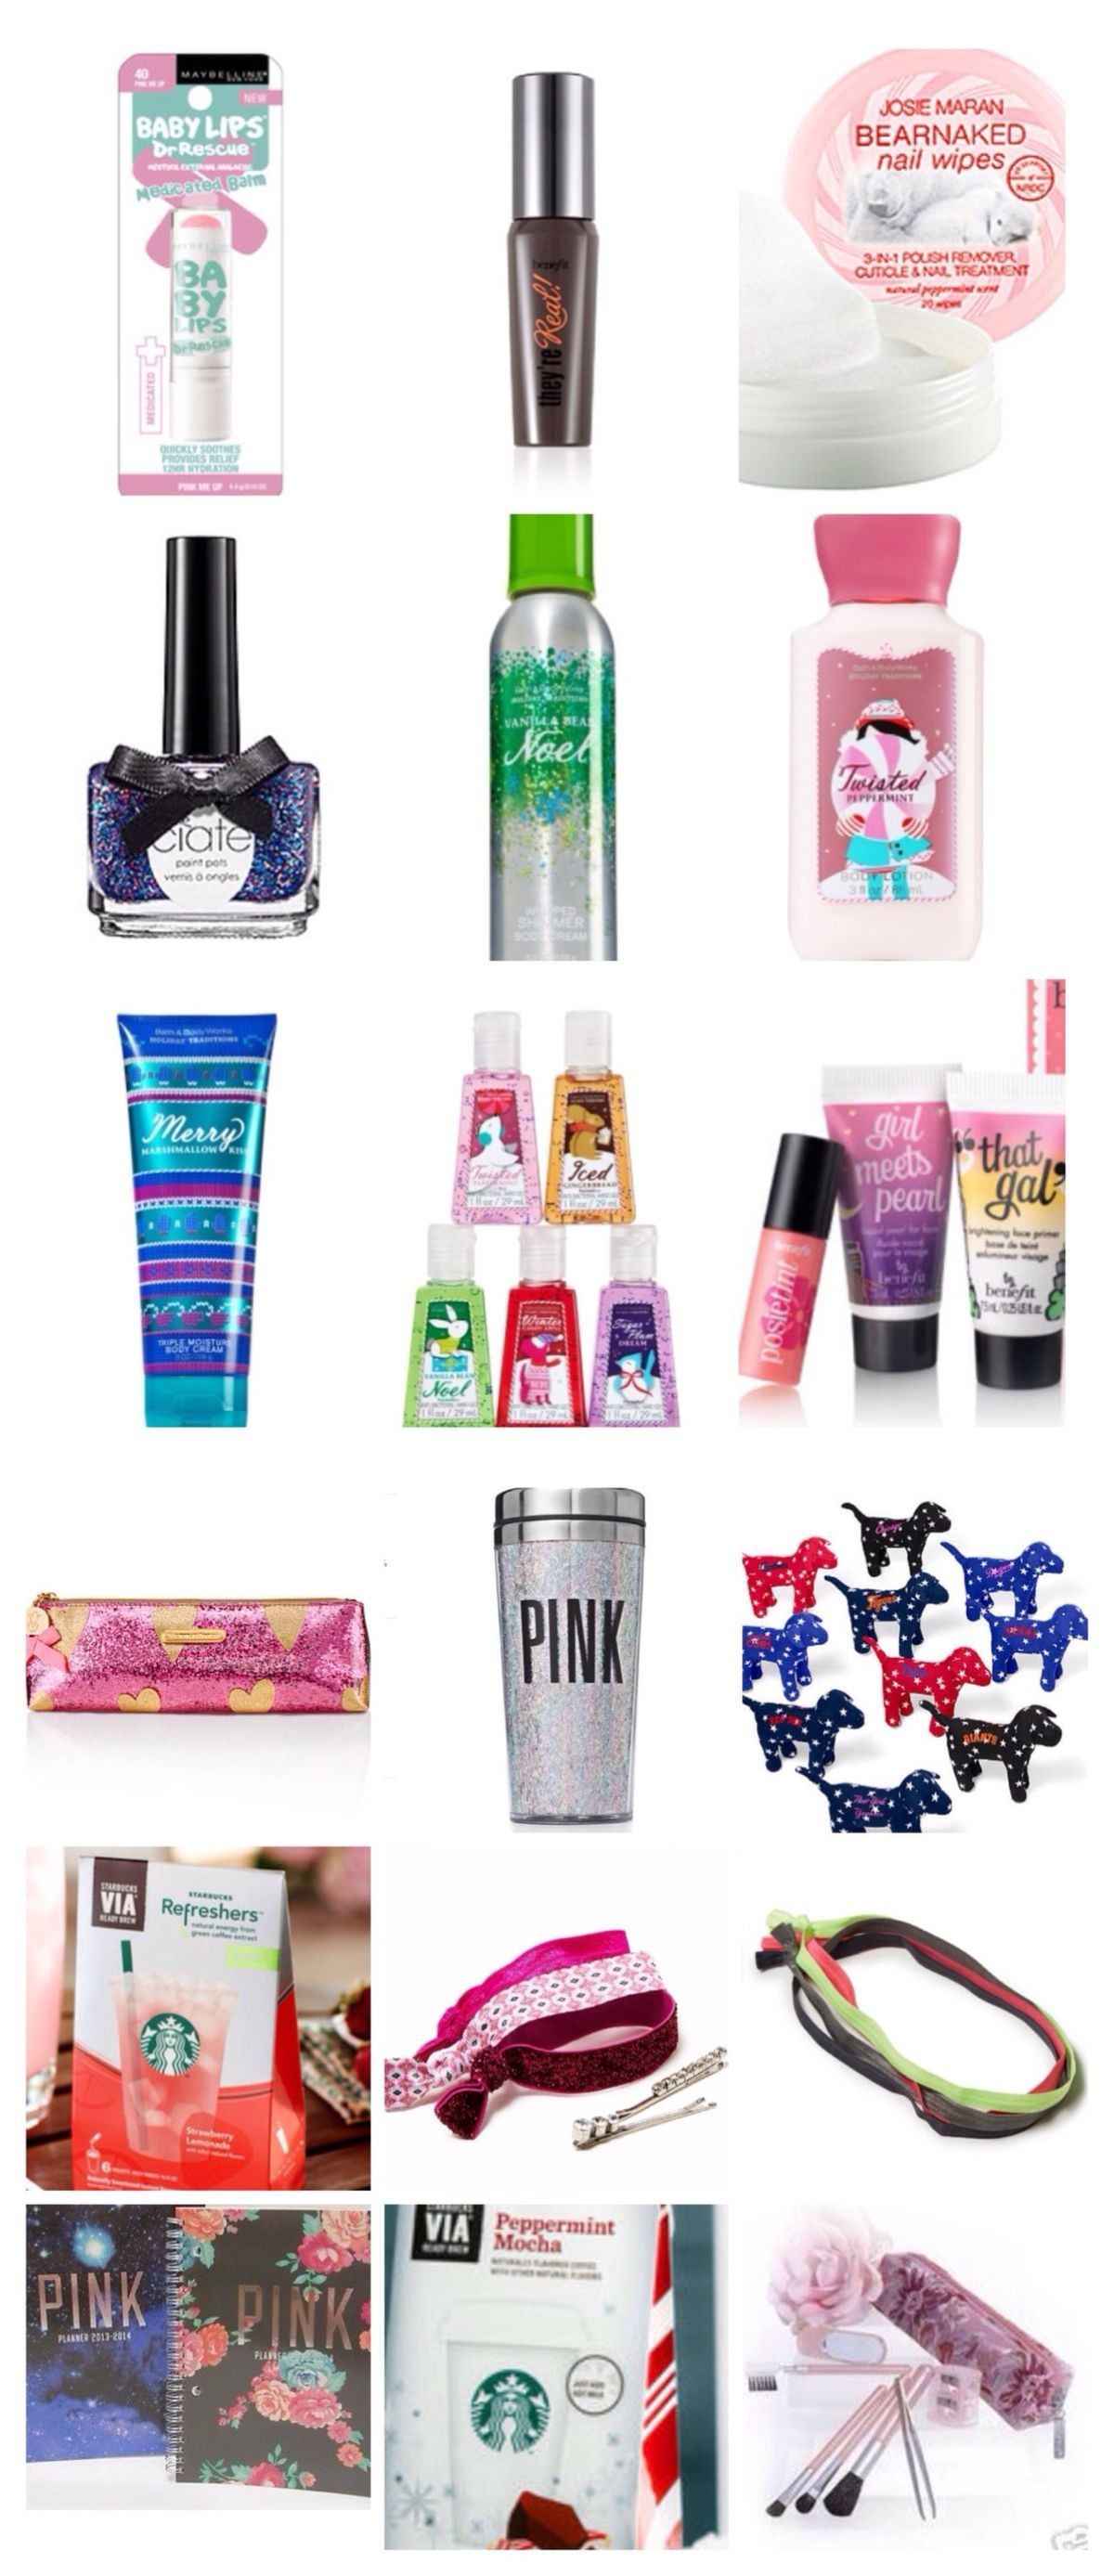 Things To Ask For For Christmas Teenage Girl: 5c5806cb6a9387ca63f4df411ebb5f03.jpg 1,200×2,775 Pixels